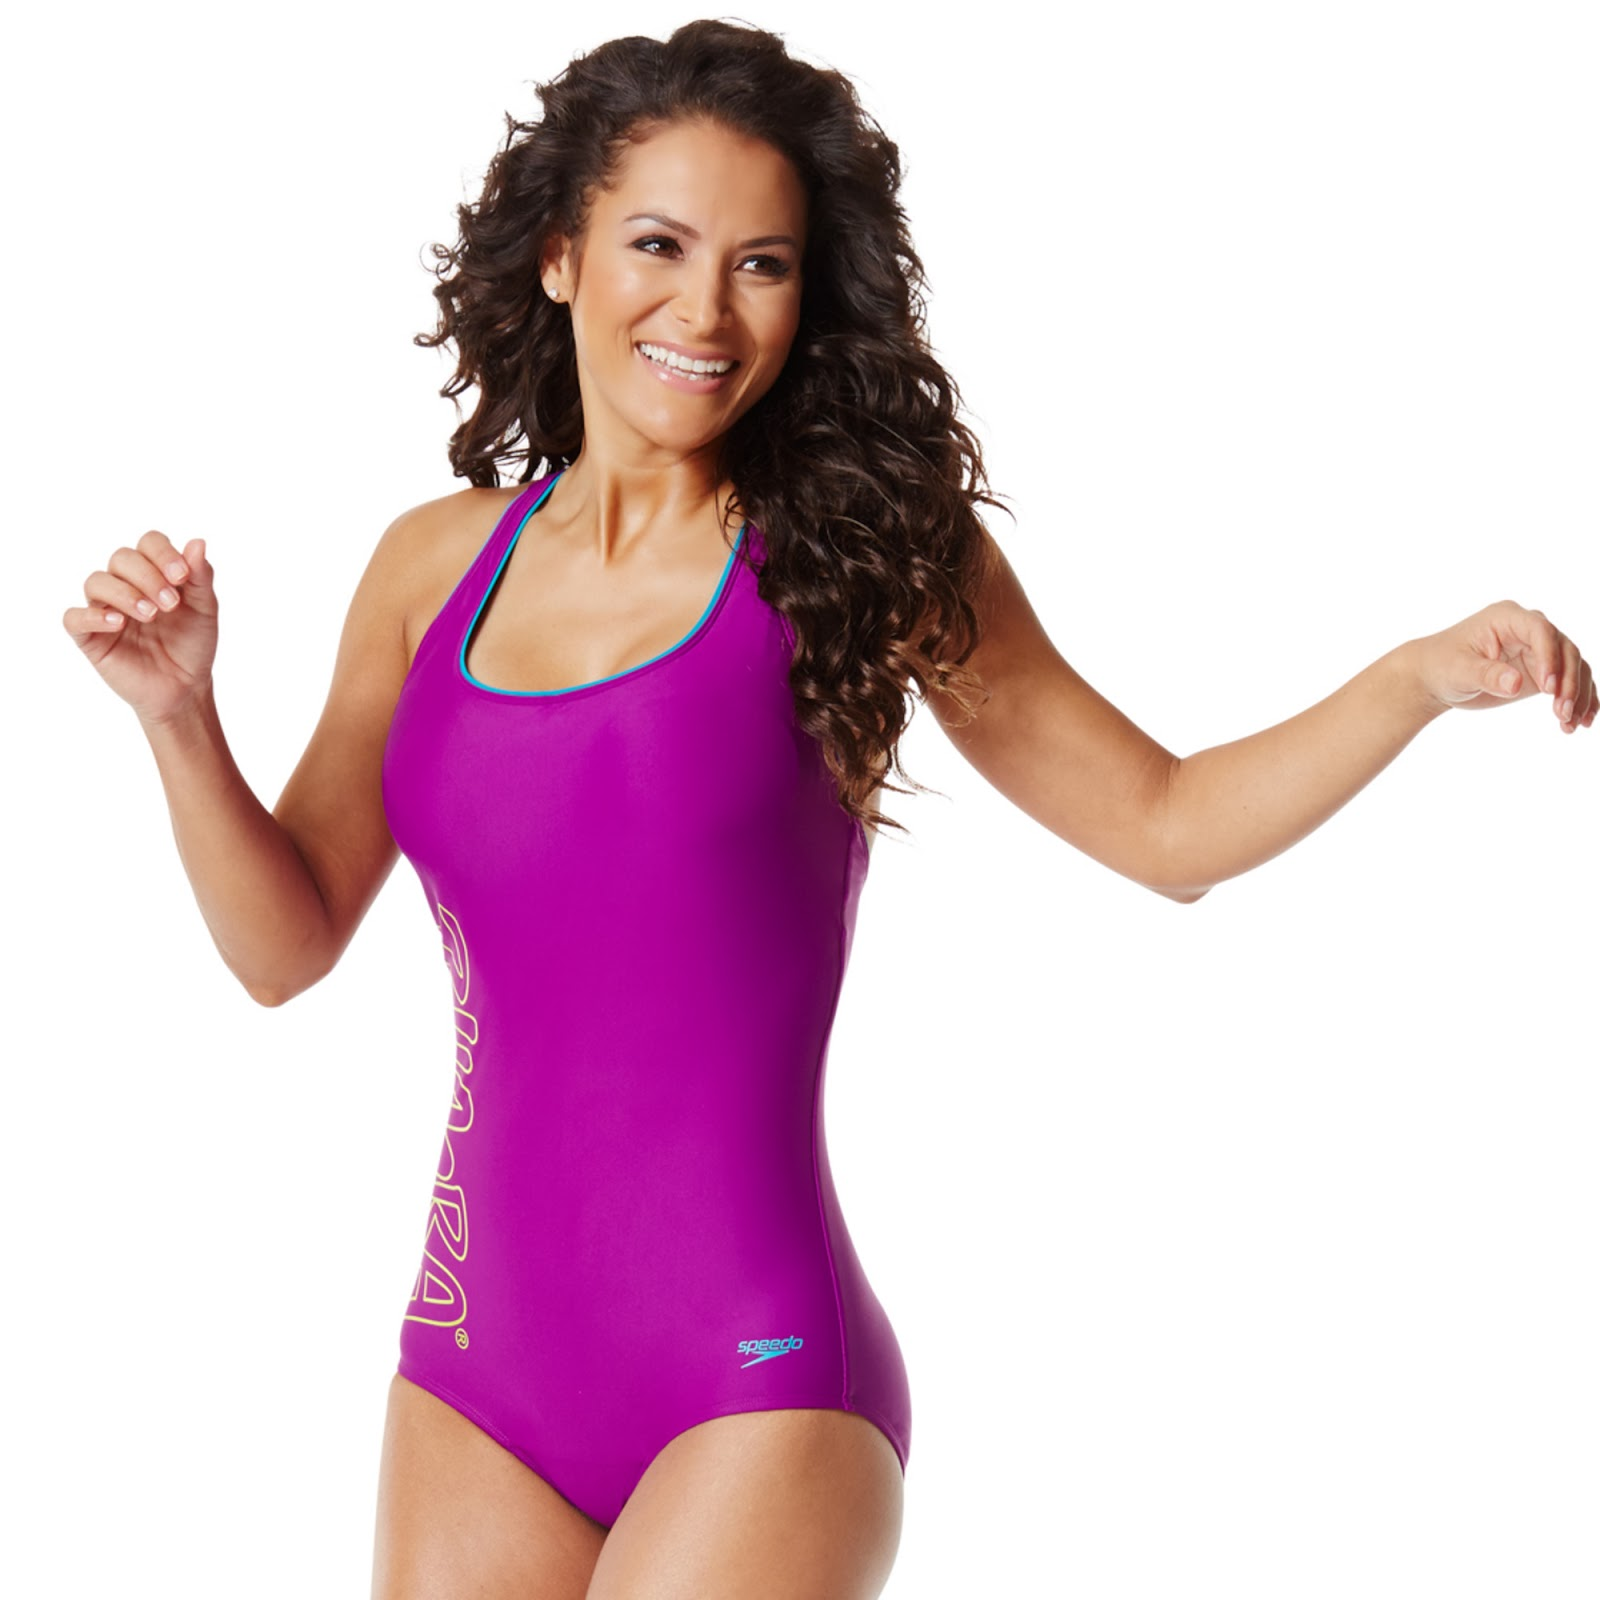 5a8720b373 The Zumba Mommy  The Speedo swimwear collection for Zumba